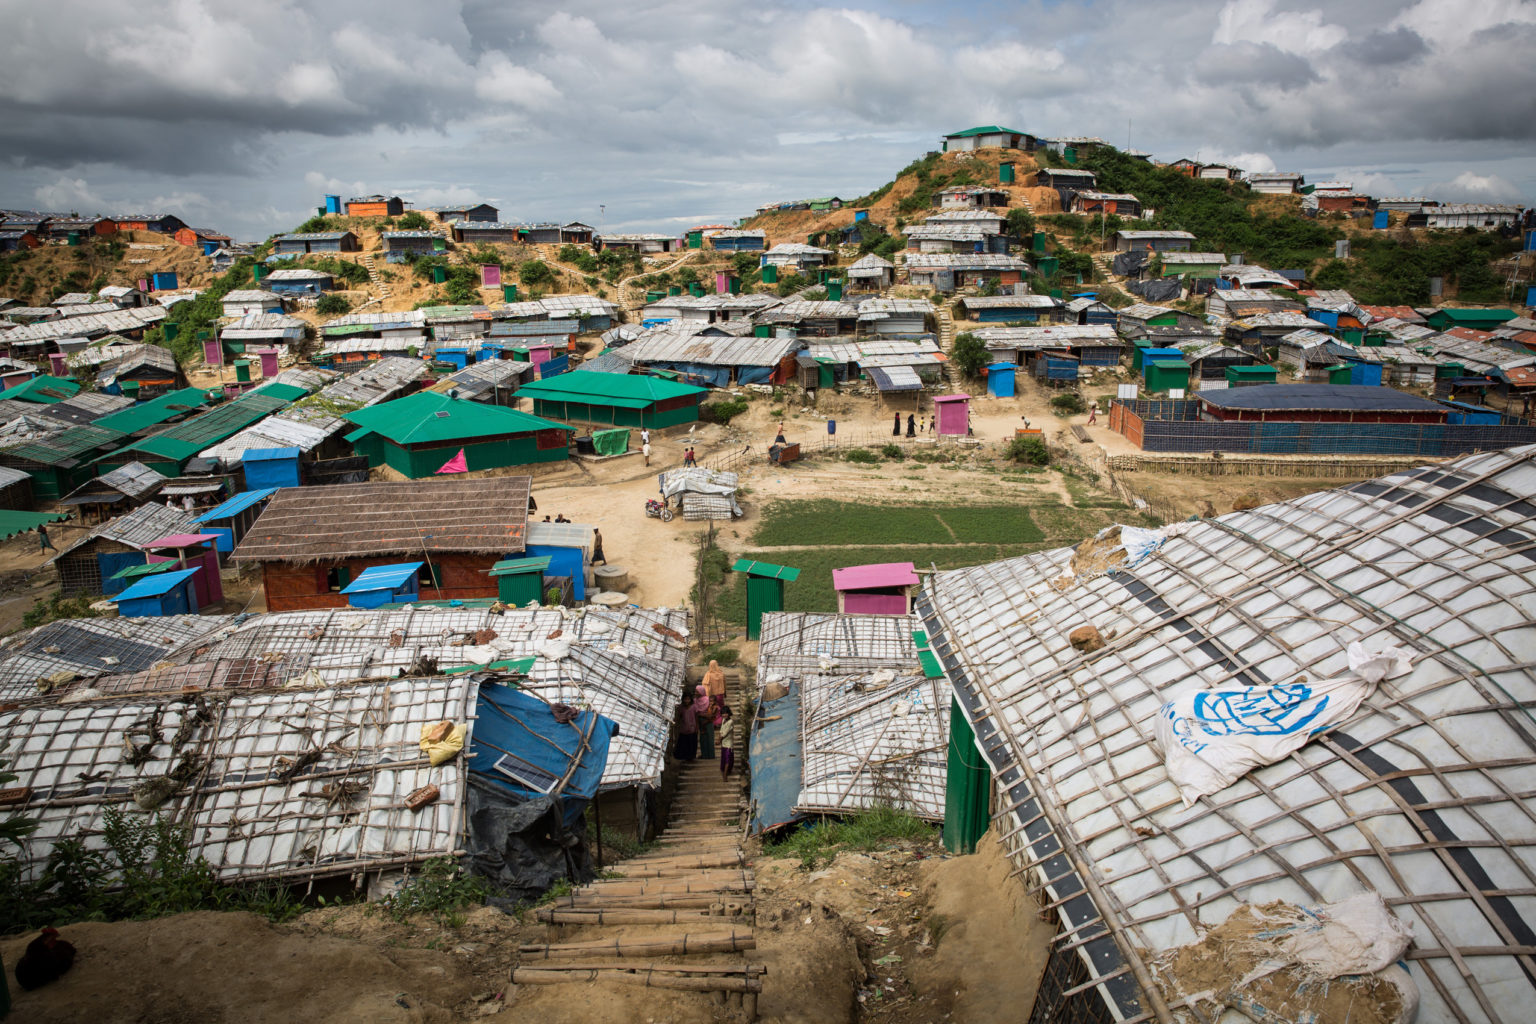 Cox's Bazar Bangladesh aerial view shows a refugee camp with dilapidated houses.